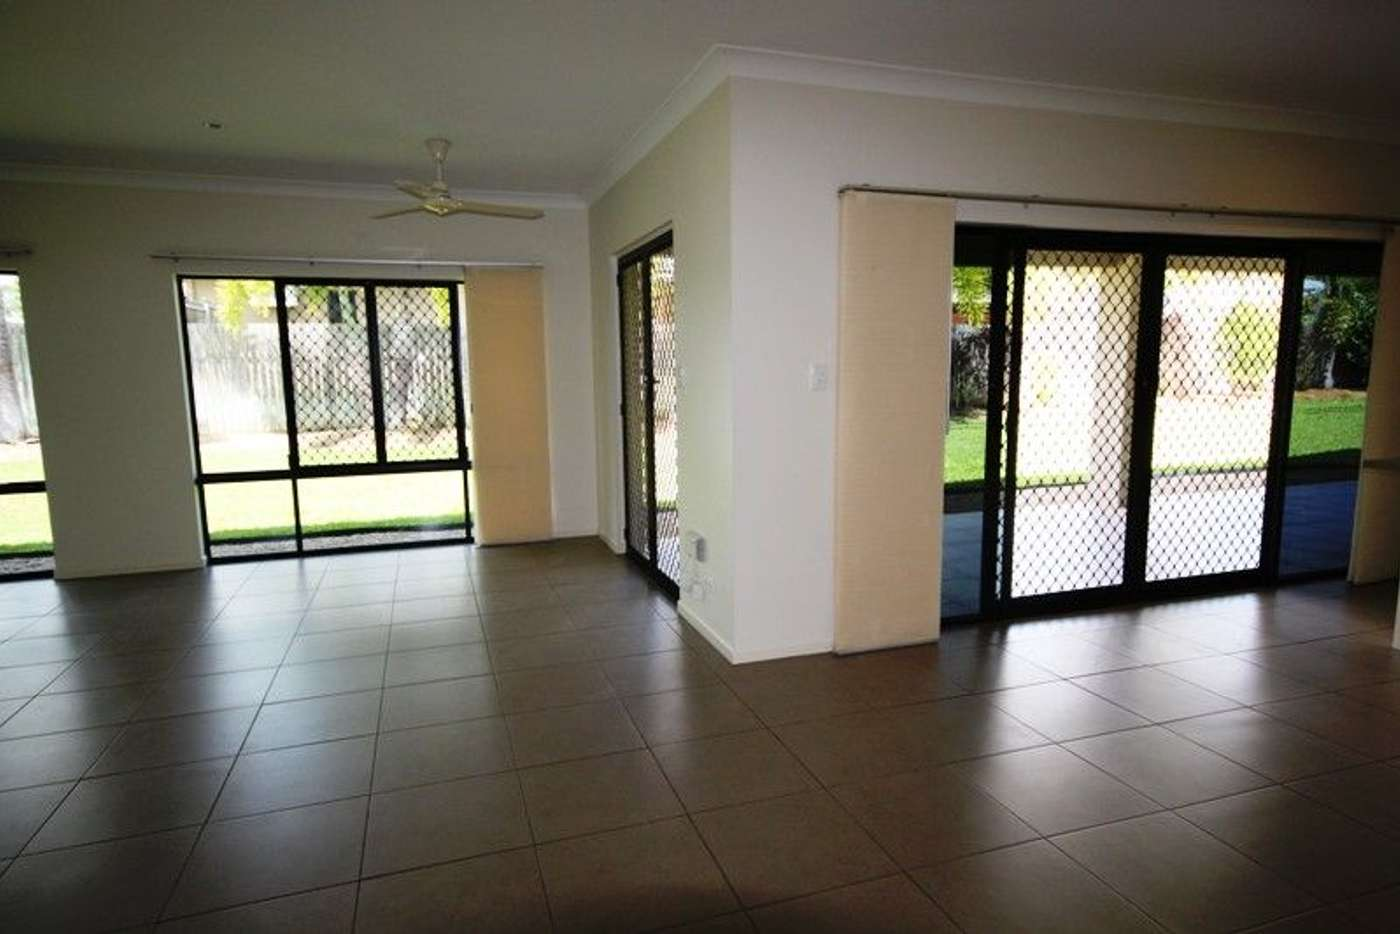 Sixth view of Homely house listing, 9 Best Street, Mareeba QLD 4880